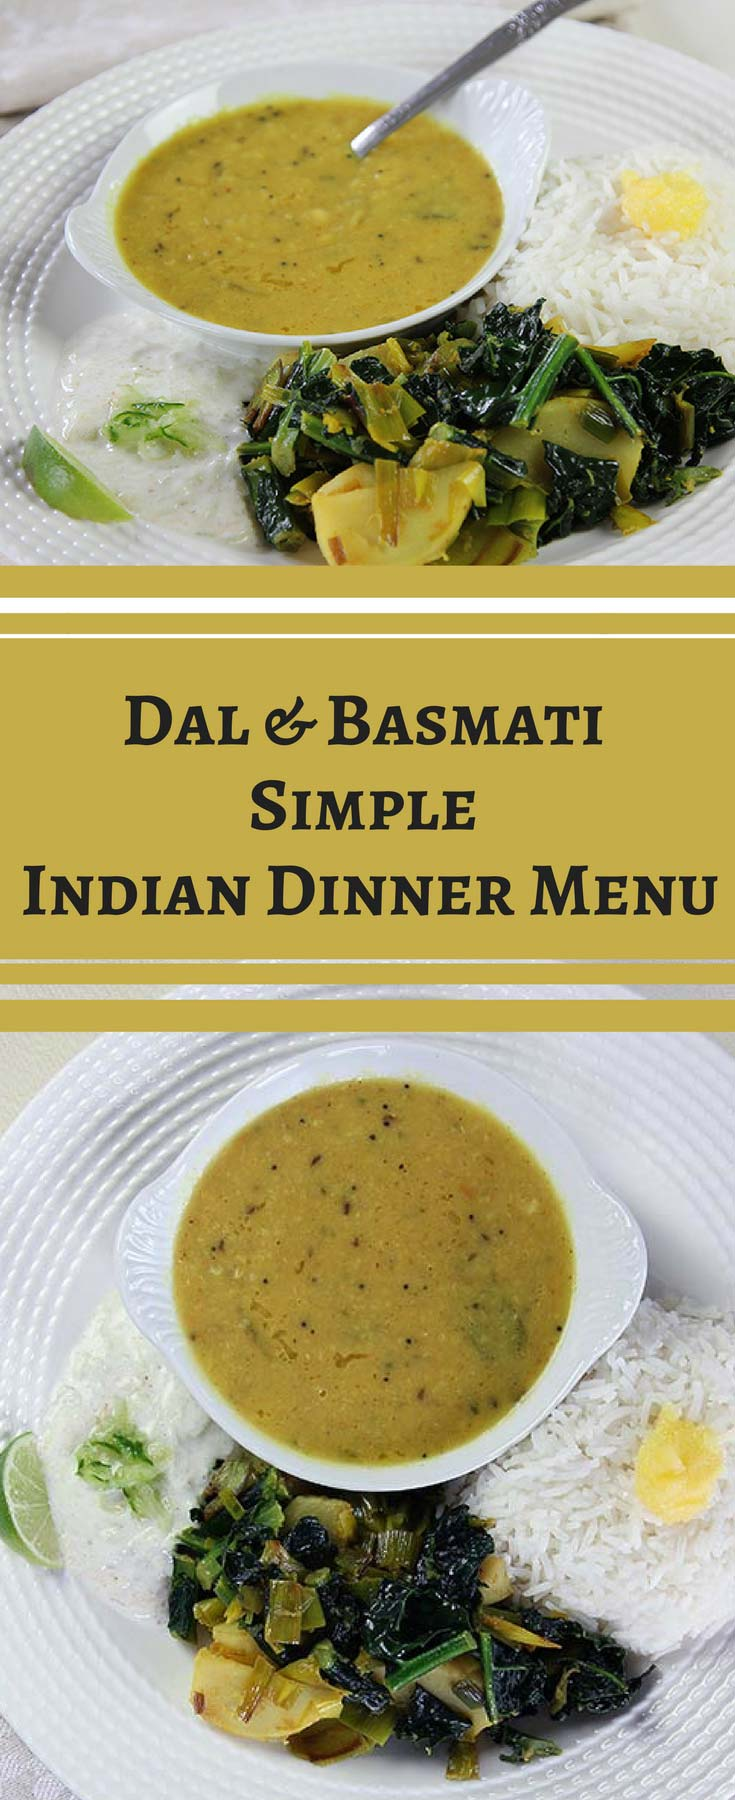 Simple indian dinner menu dal and basmati rice buttered veg this vegetarian indian dinner recipefeaturing dal and basmati rice with a vegetable side forumfinder Gallery